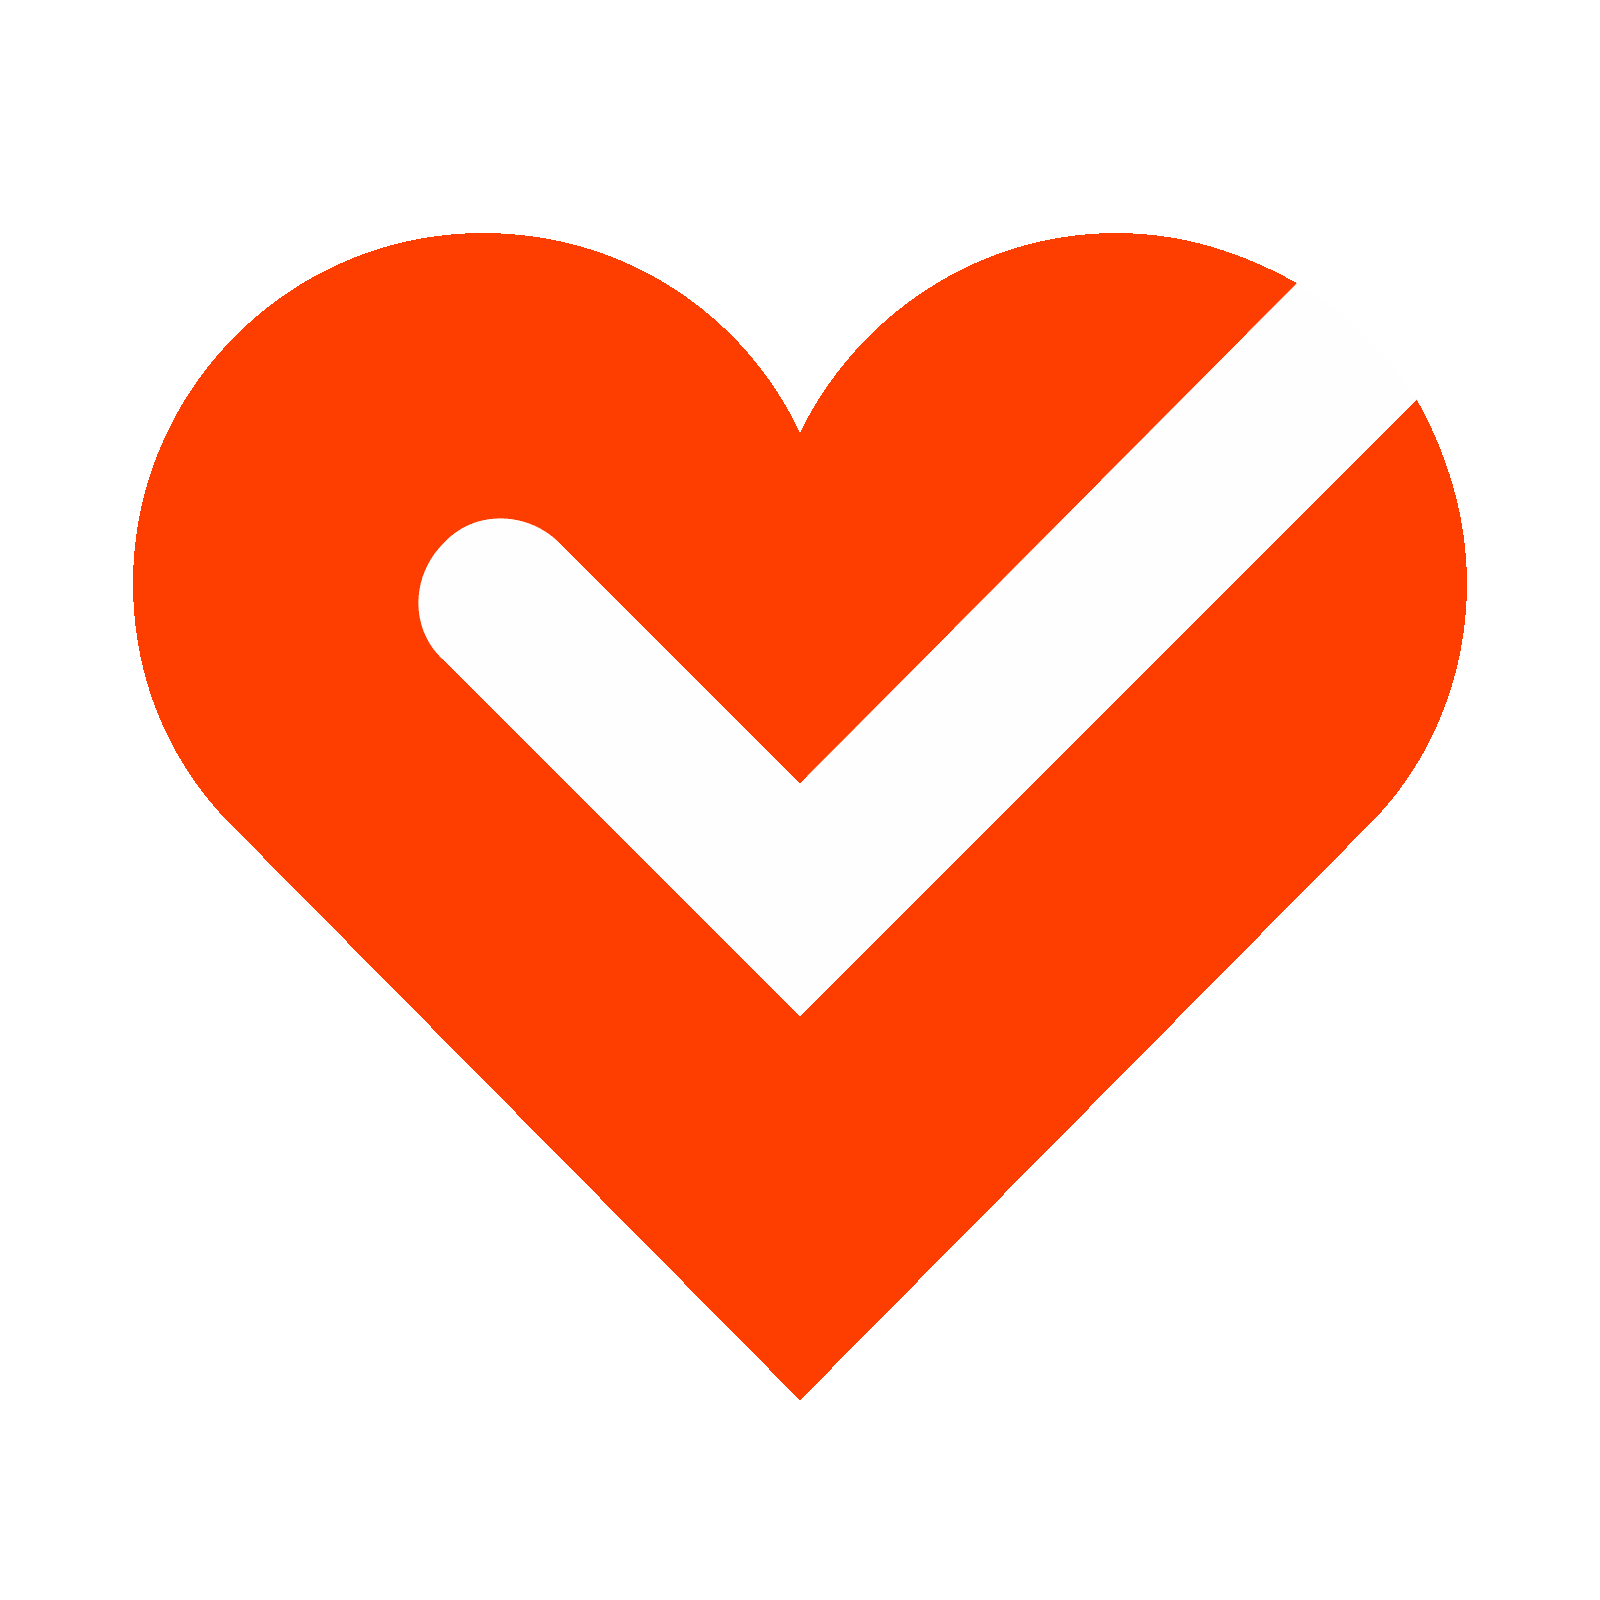 Health icon png. Heart free download and